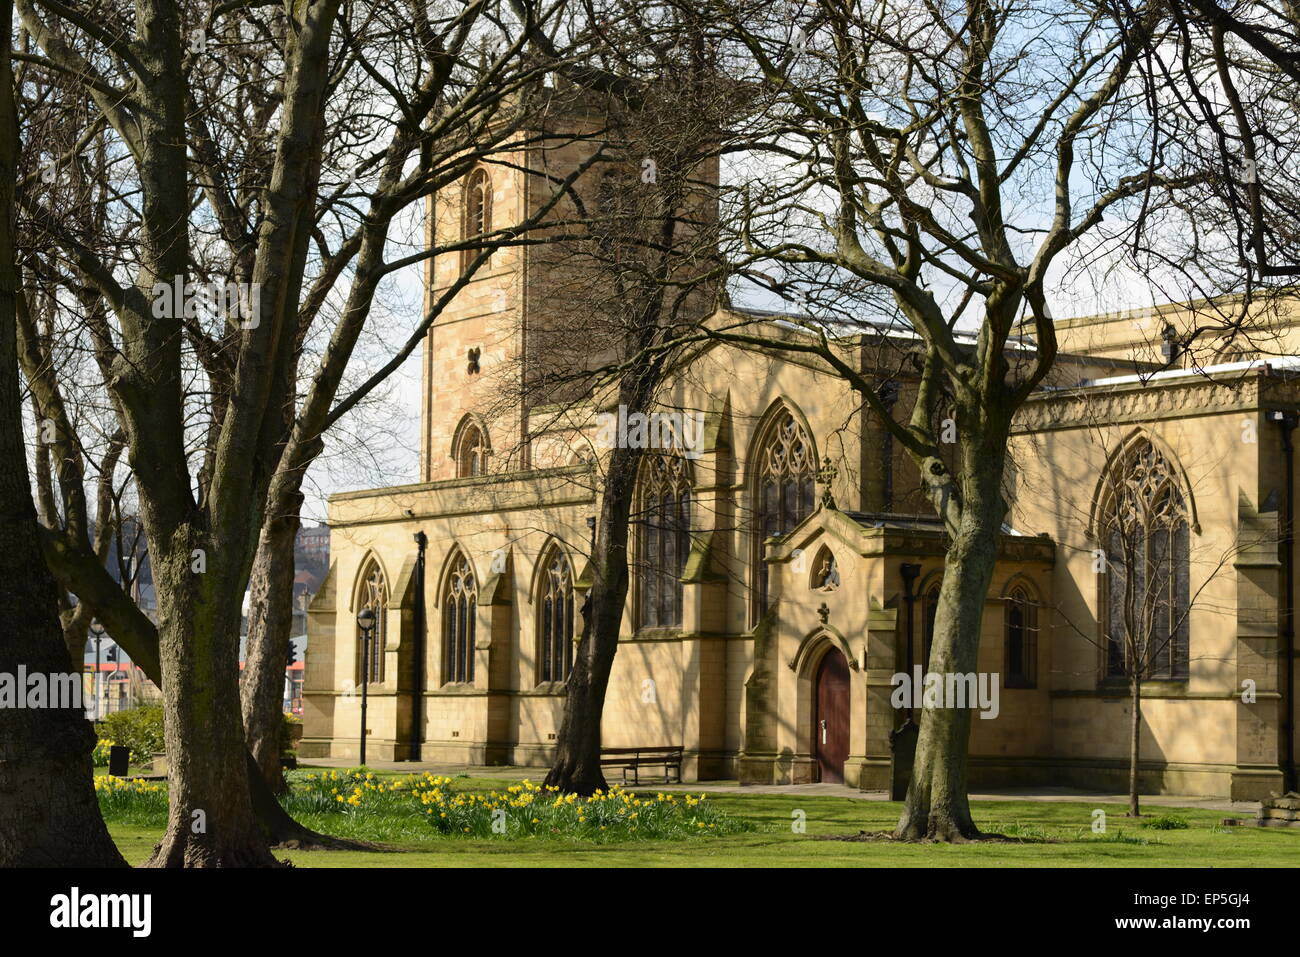 A view through the willow trees at Dewsbury Minster, West Yorkshire - Stock Image